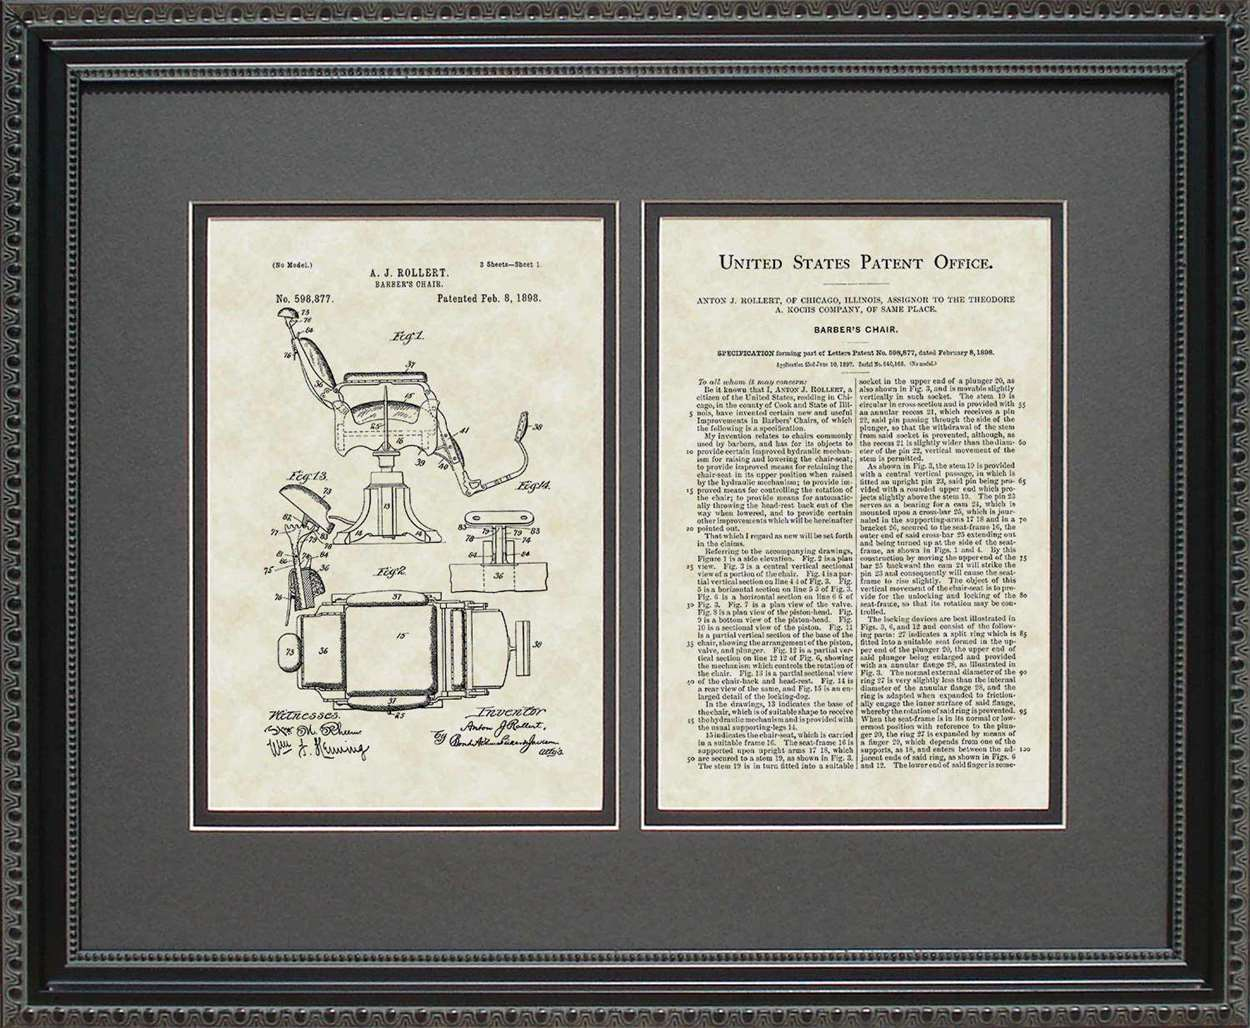 Barber Chair Patent, Art & Copy, Rollert, 1898, 16x20